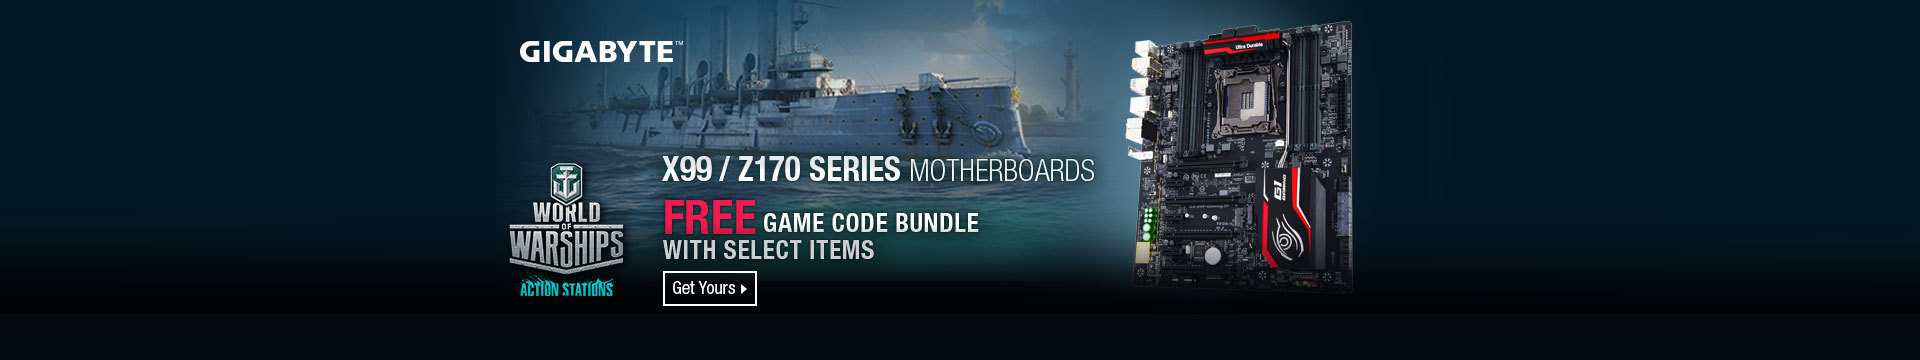 Free Game Code Bundle with Select Items